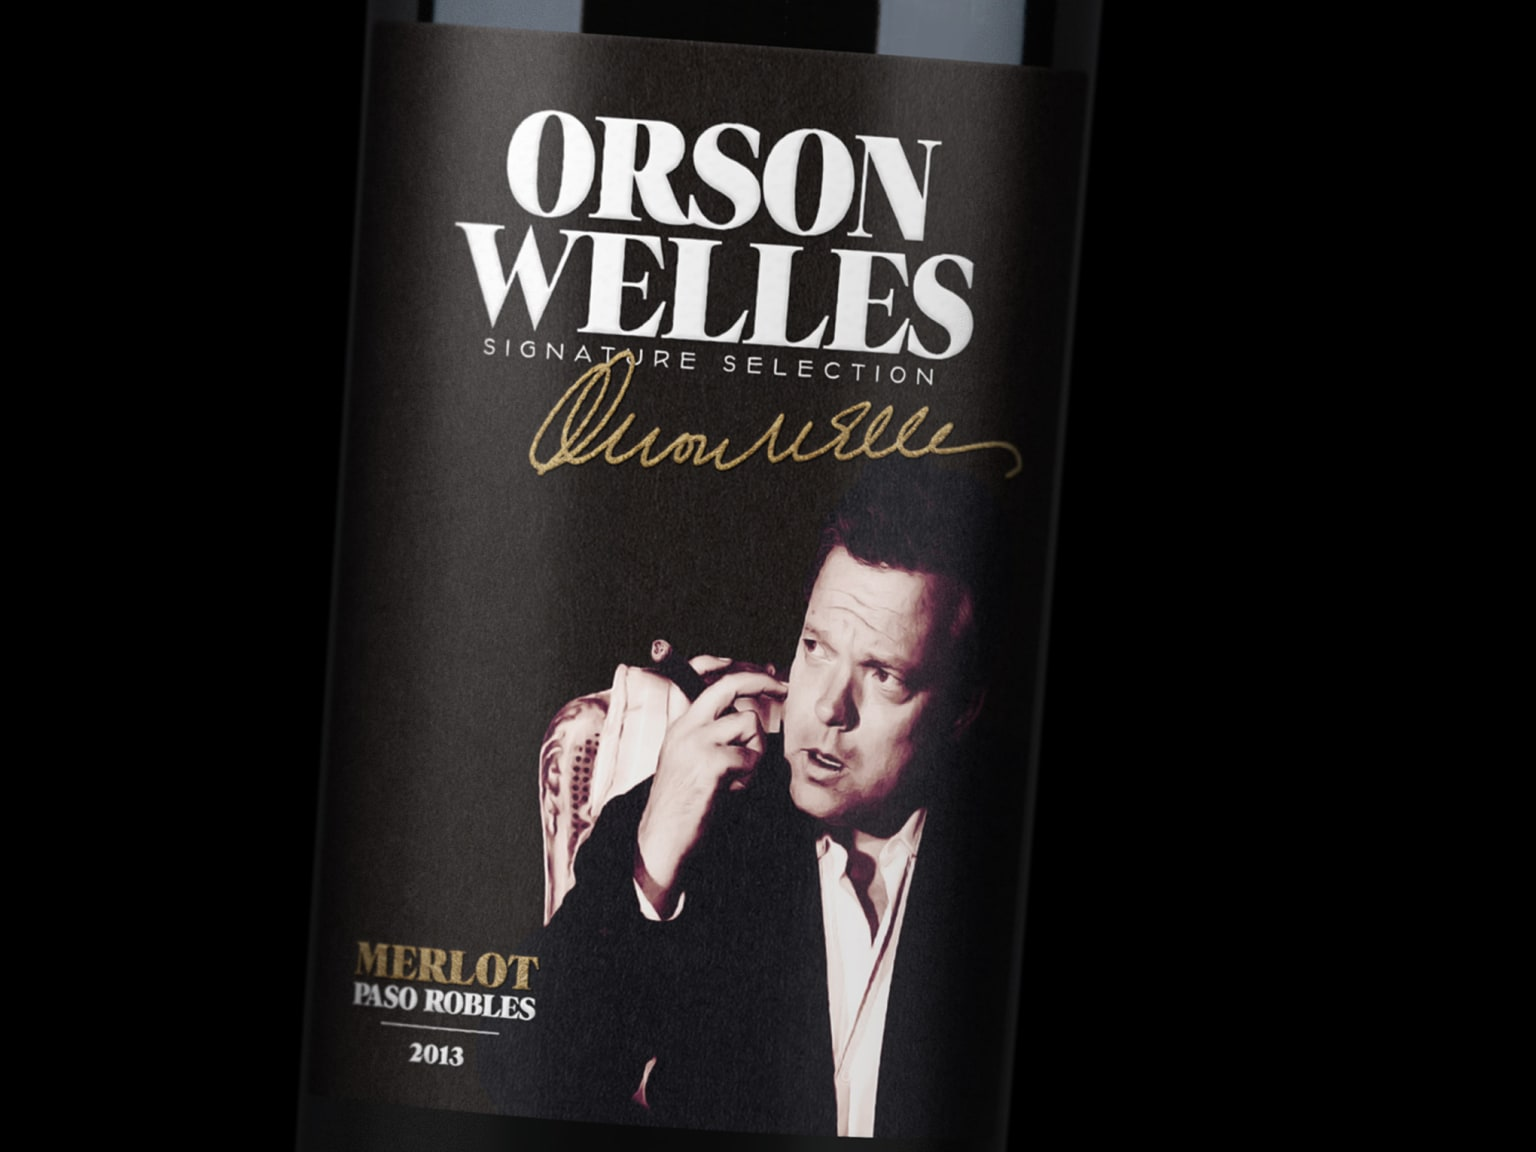 Orson Welles Signature Selection